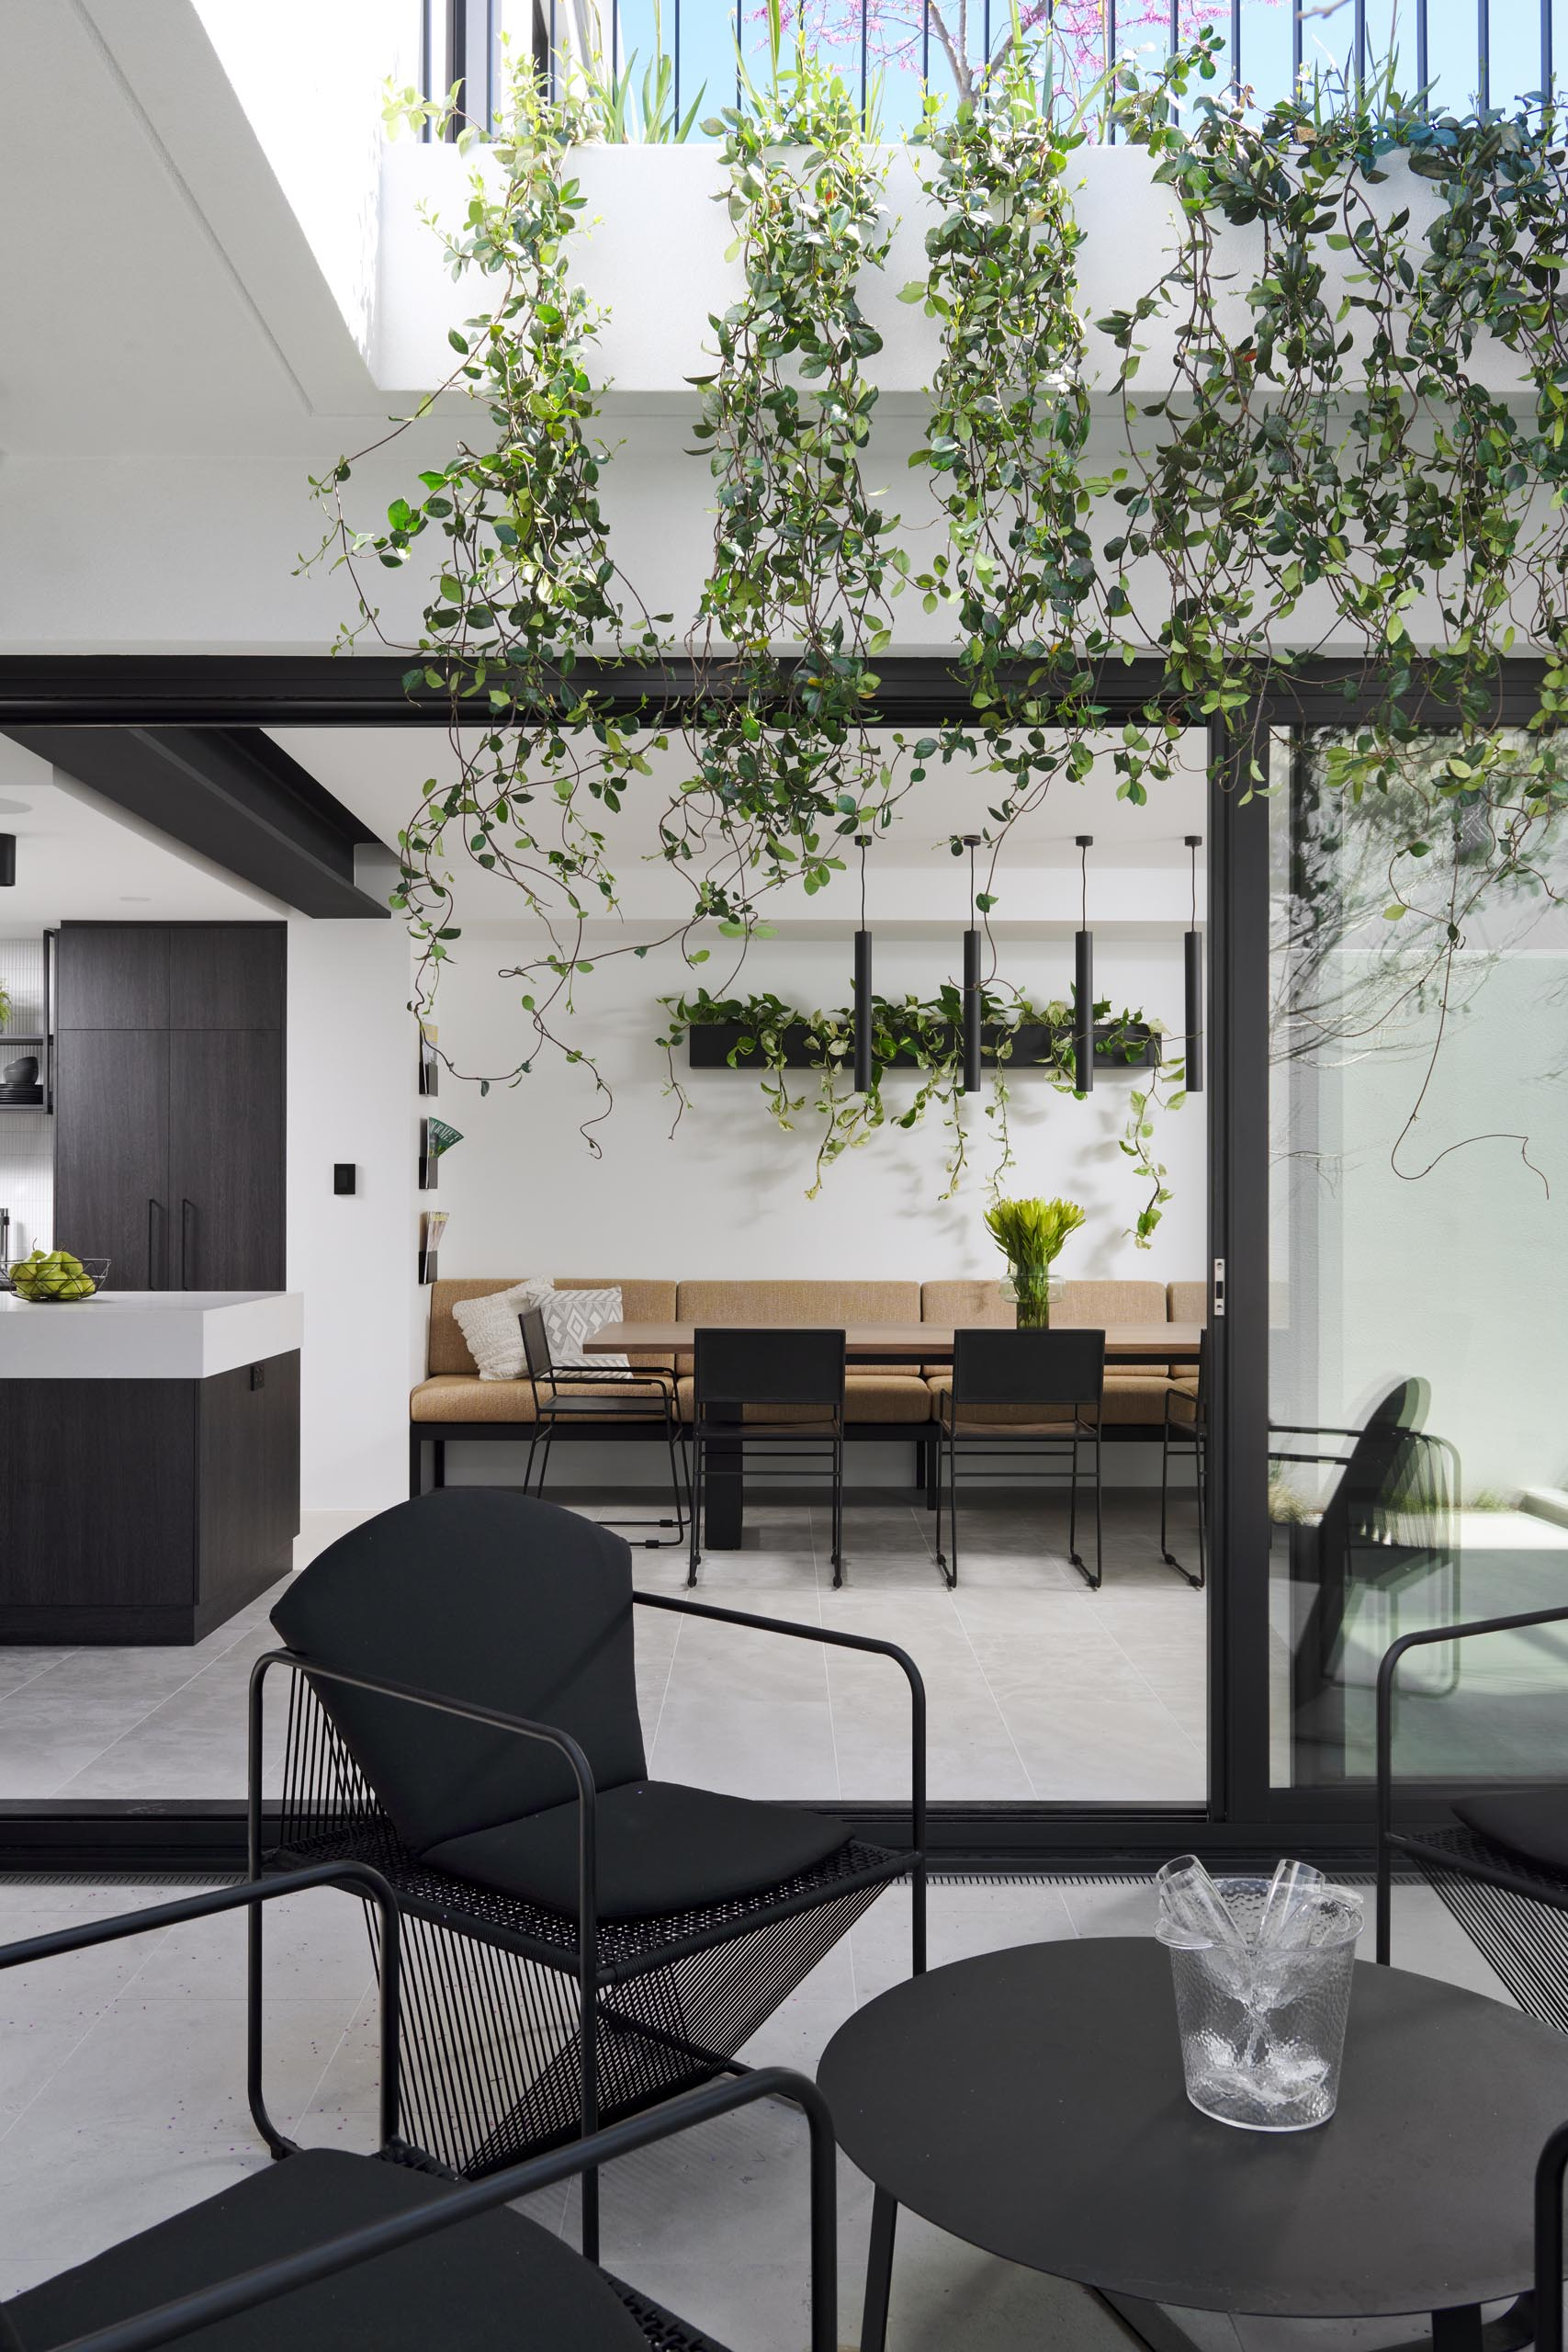 This modern dining room is adjacent to the kitchen and includes a long built-in banquette bench, a wall-mounted planter, and black dining chairs.